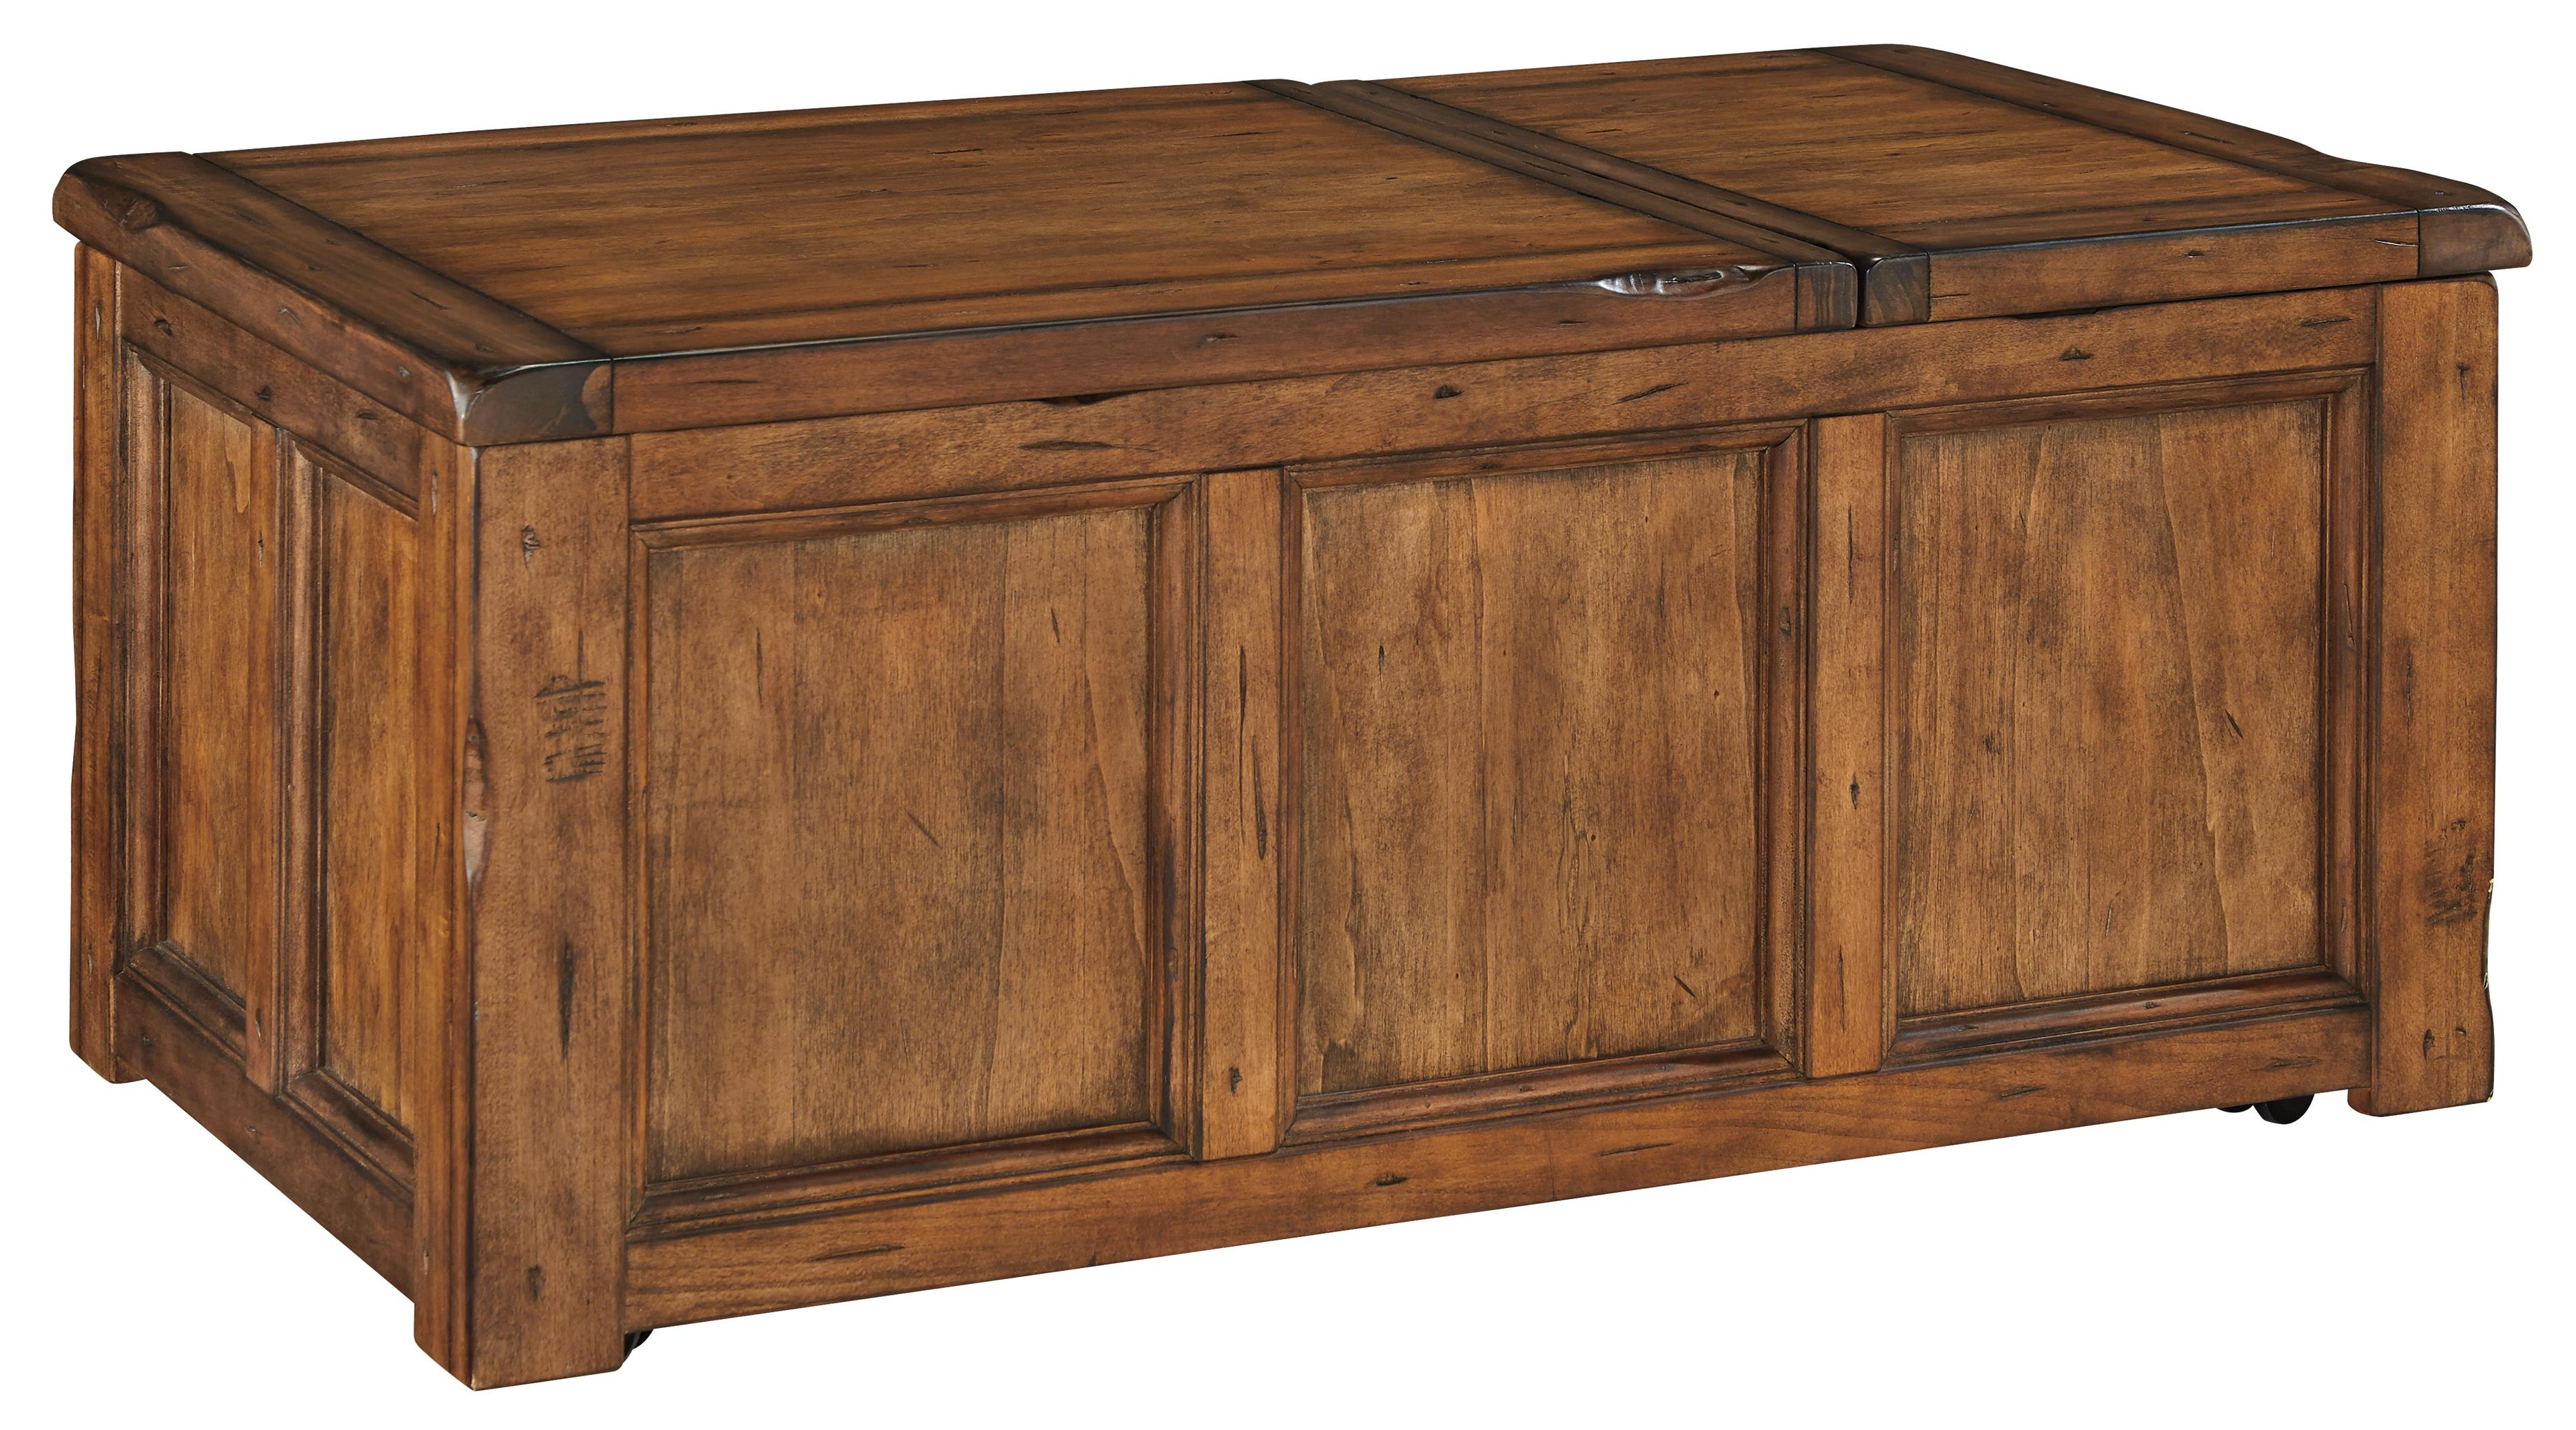 Rustic Trunk Style Rectangular Lift Top Cocktail Table With Storage And Casters By Signature